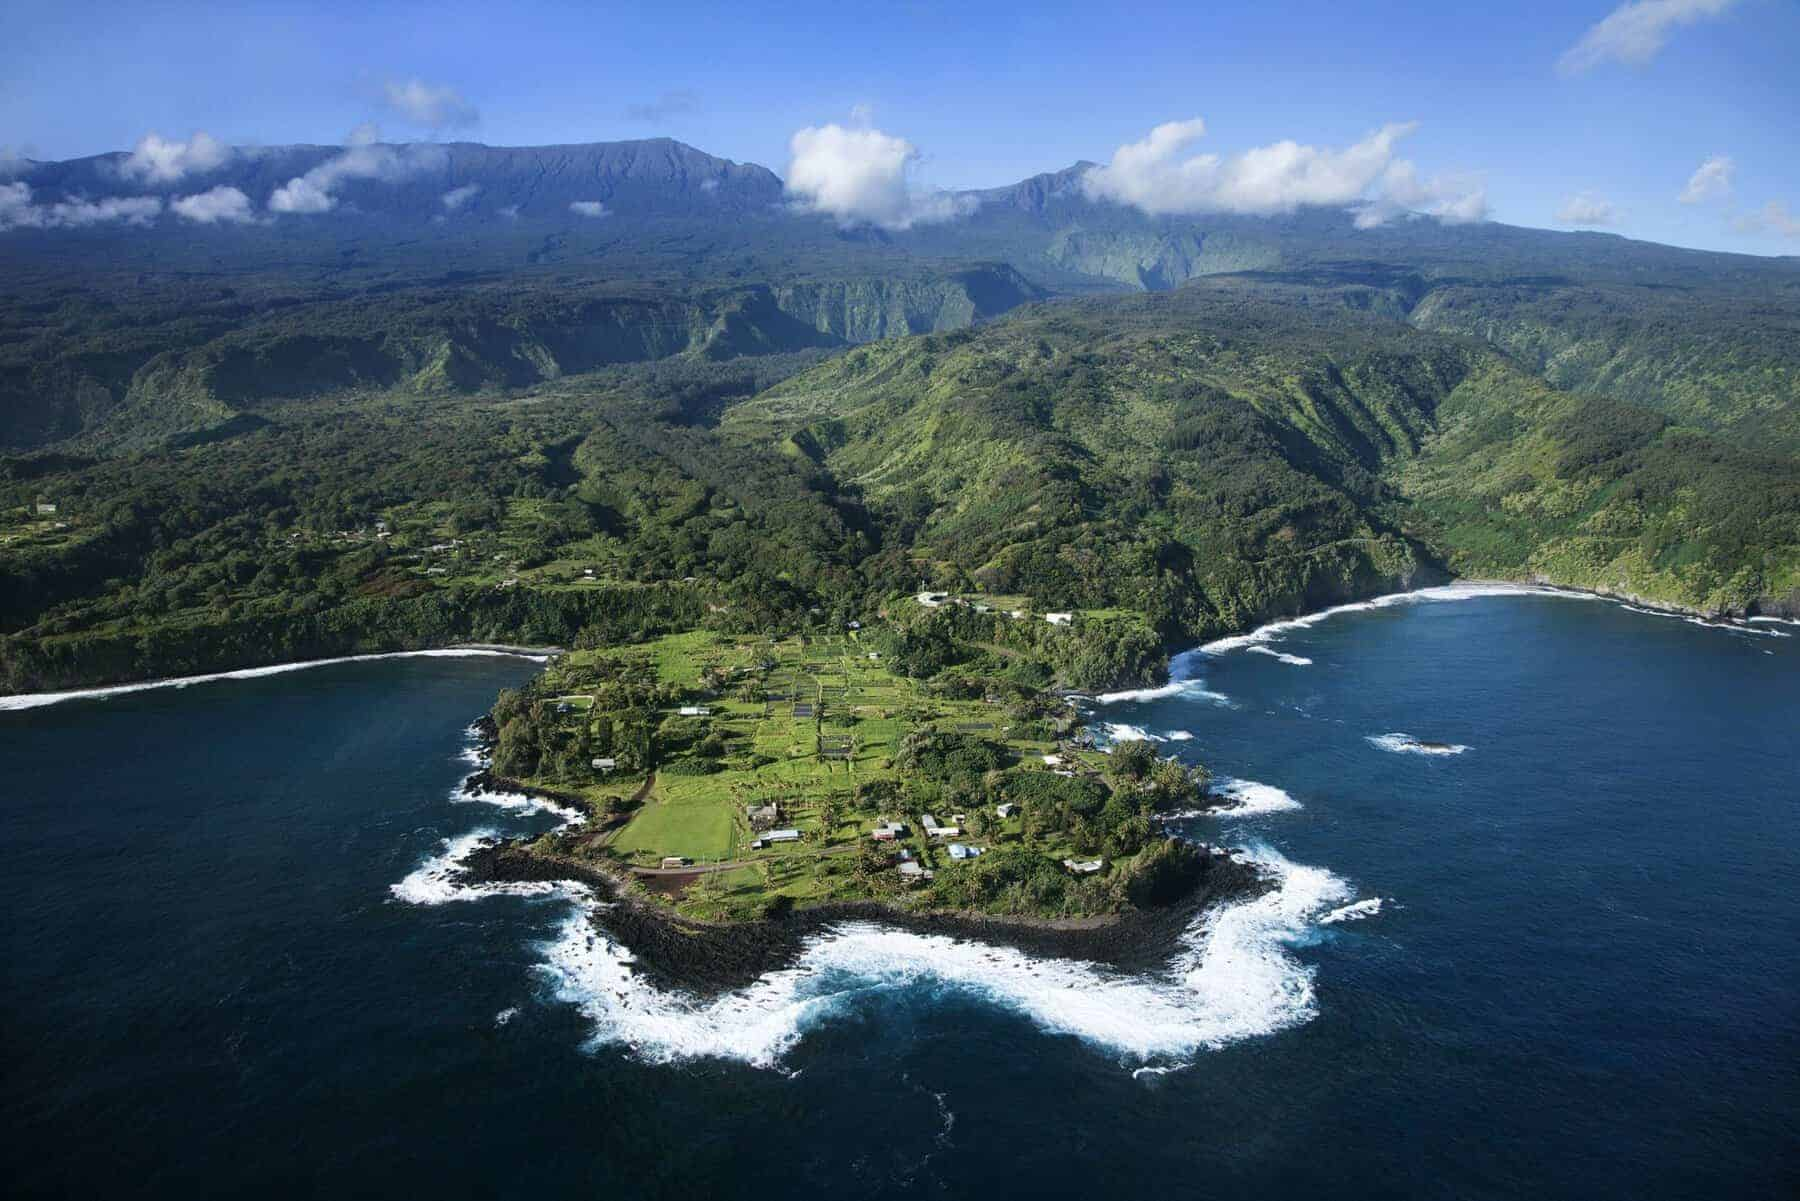 Aerial of rocky coast on Pacific ocean with mountains in background in Maui, Hawaii. Top 15 places to visit in the US